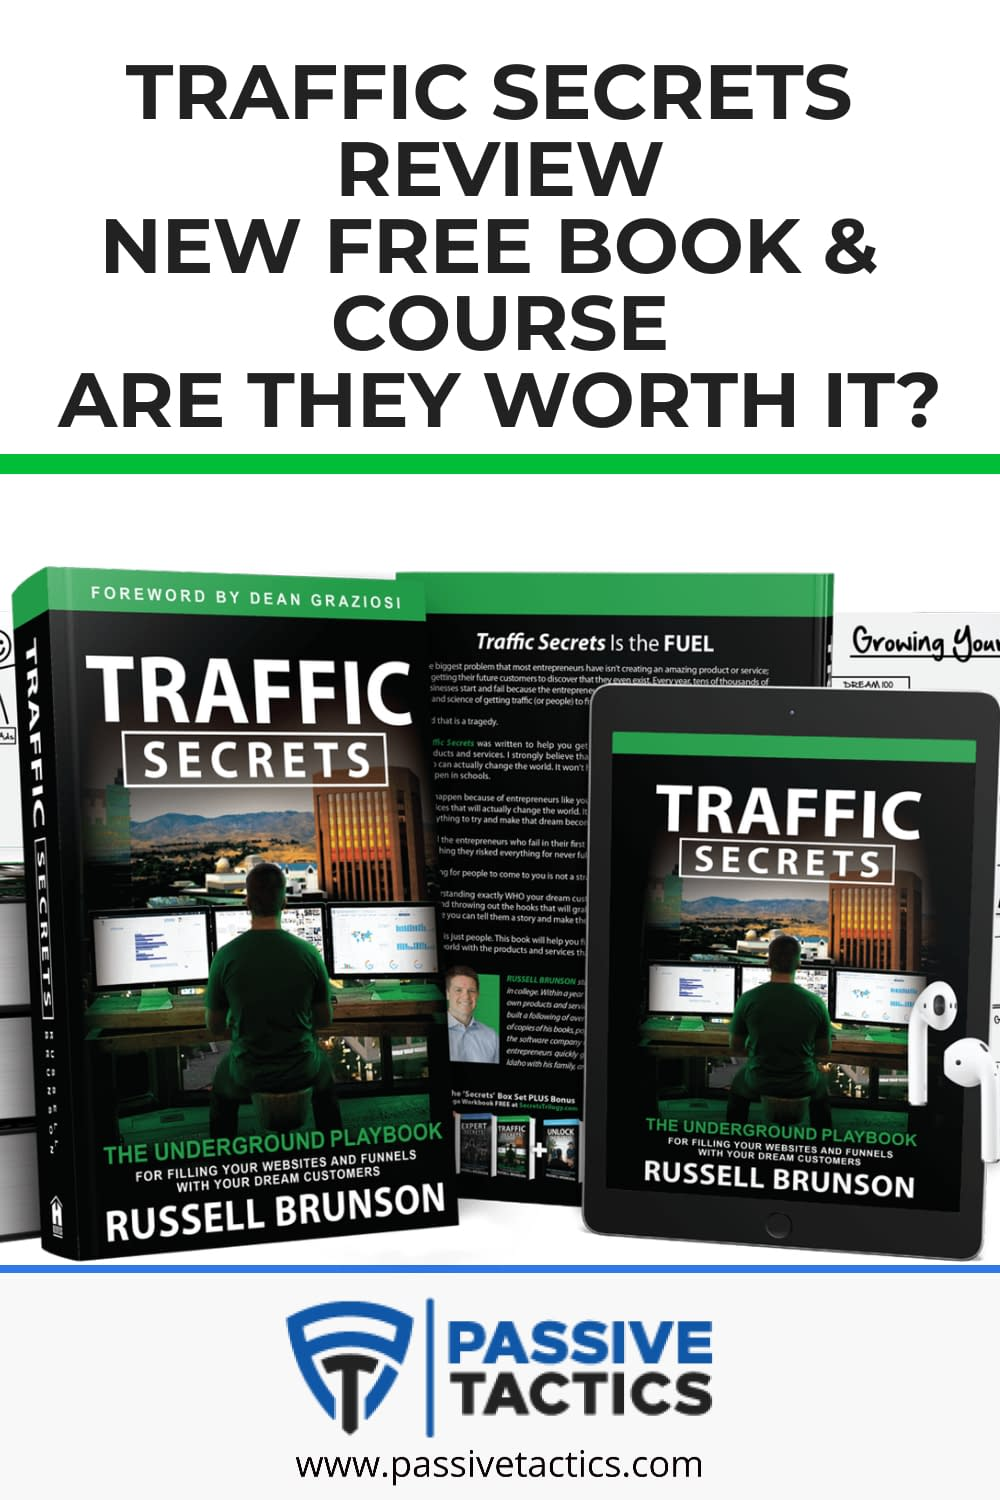 Traffic Secrets Review: New Free Book & Course. Are They Worth It?